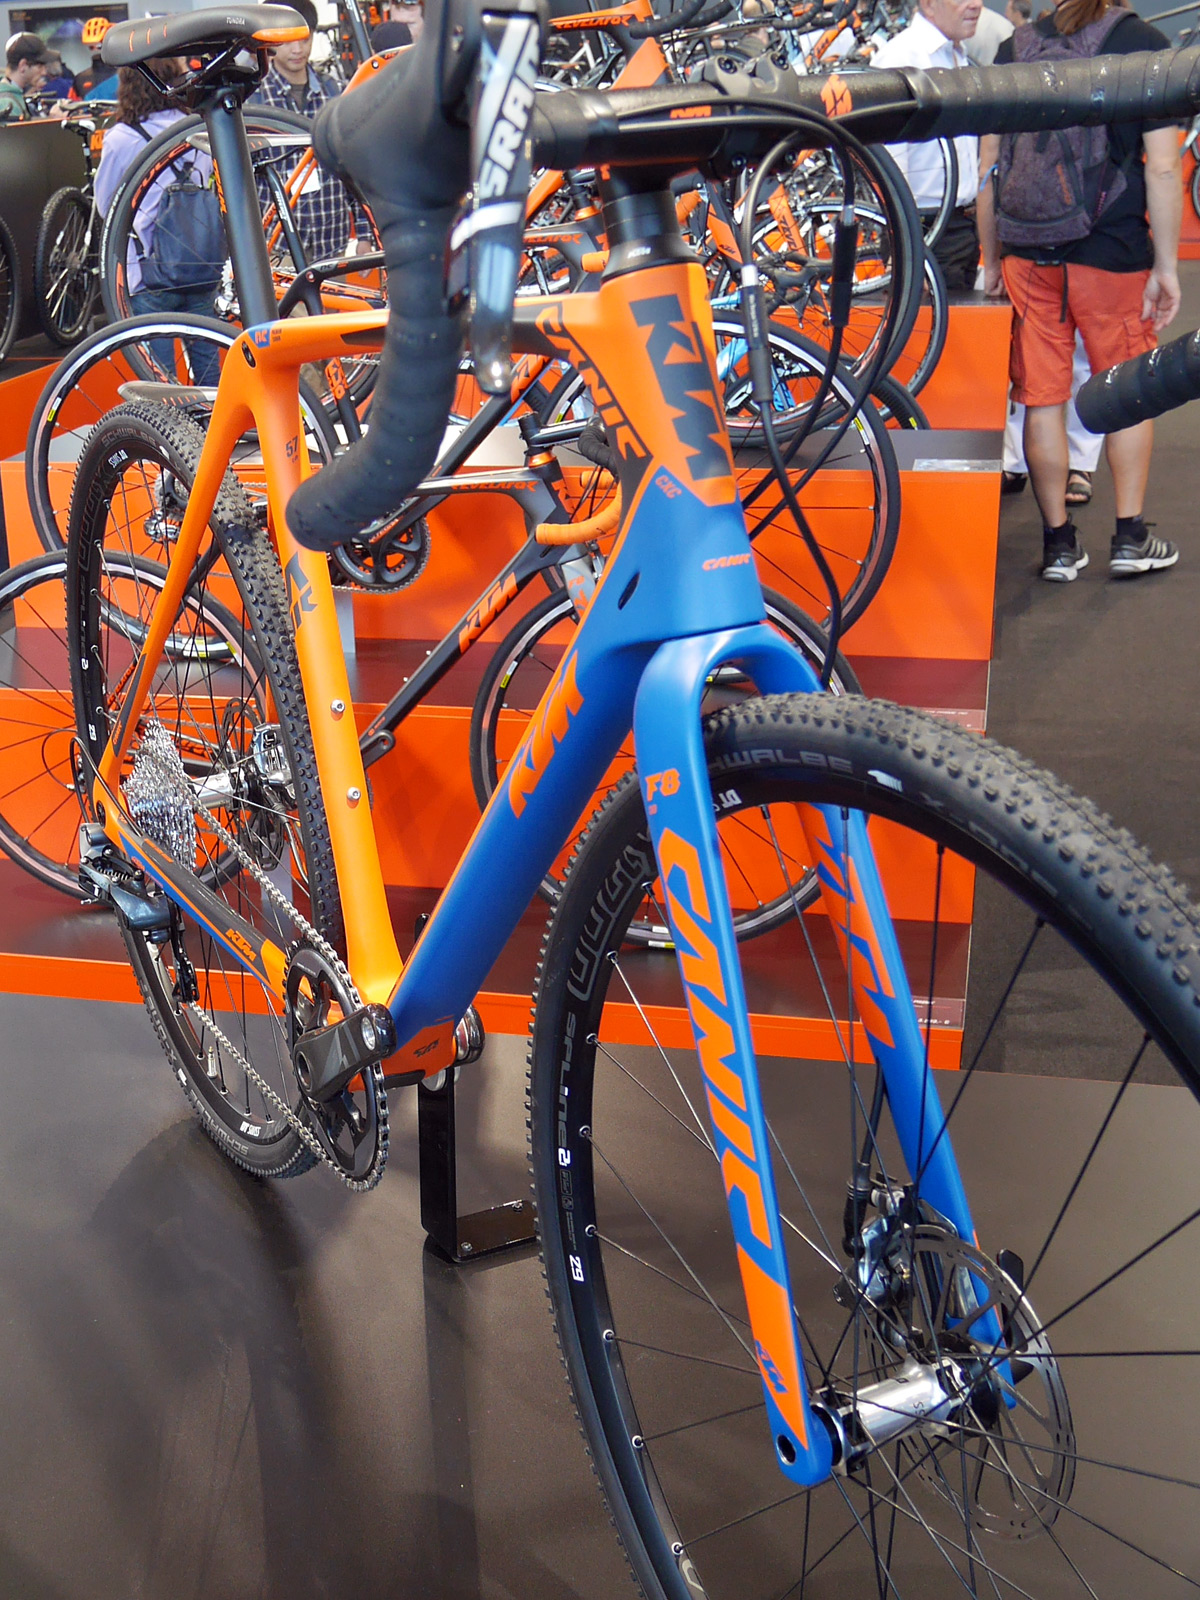 eb15 more ktm updates to the road revelator and canic cyclocross bikes bikerumor. Black Bedroom Furniture Sets. Home Design Ideas